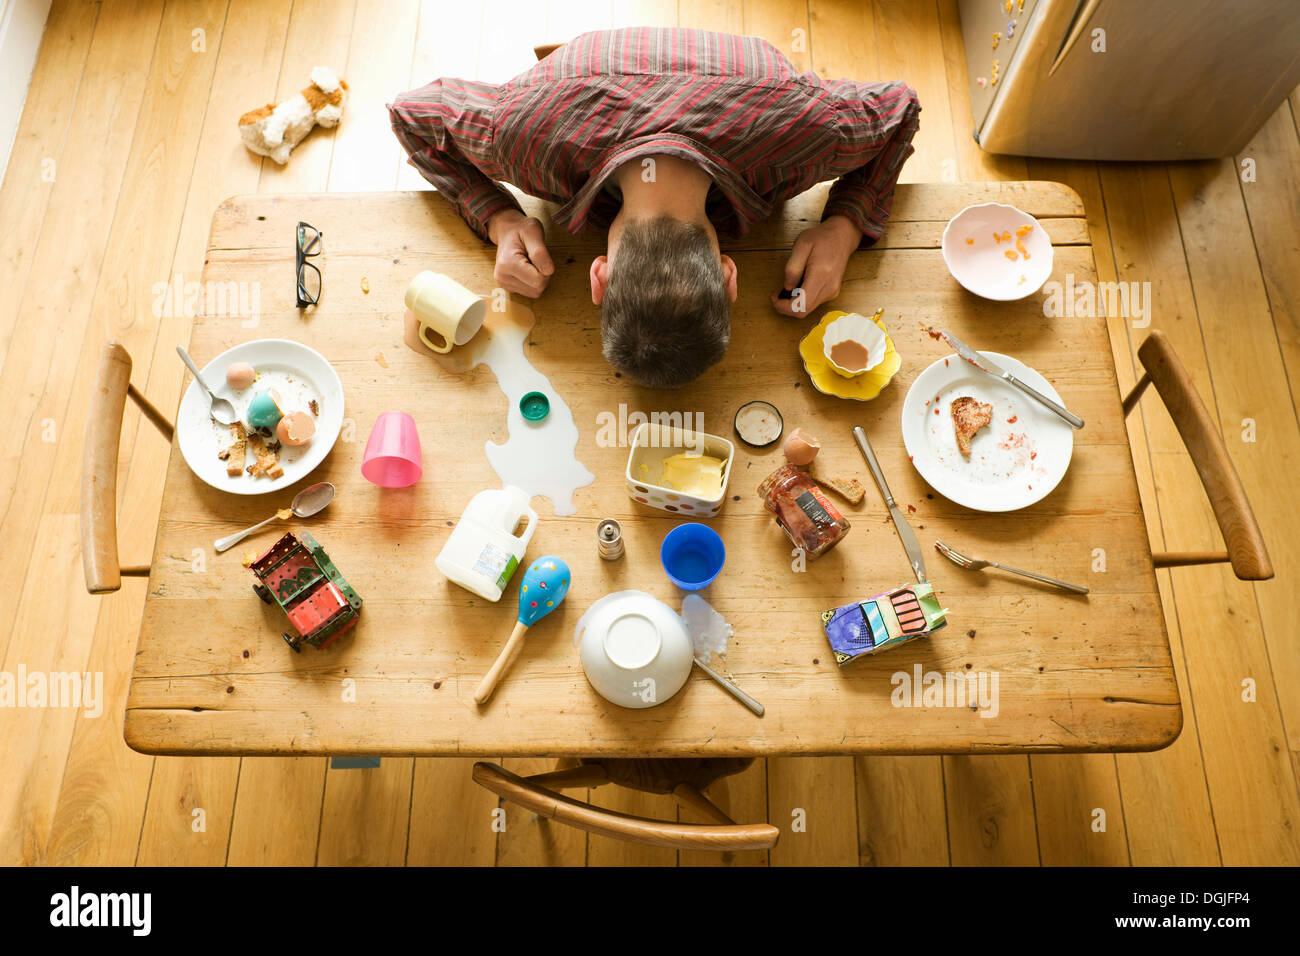 Overhead view of breakfast table with mature man amongst messy plates - Stock Image